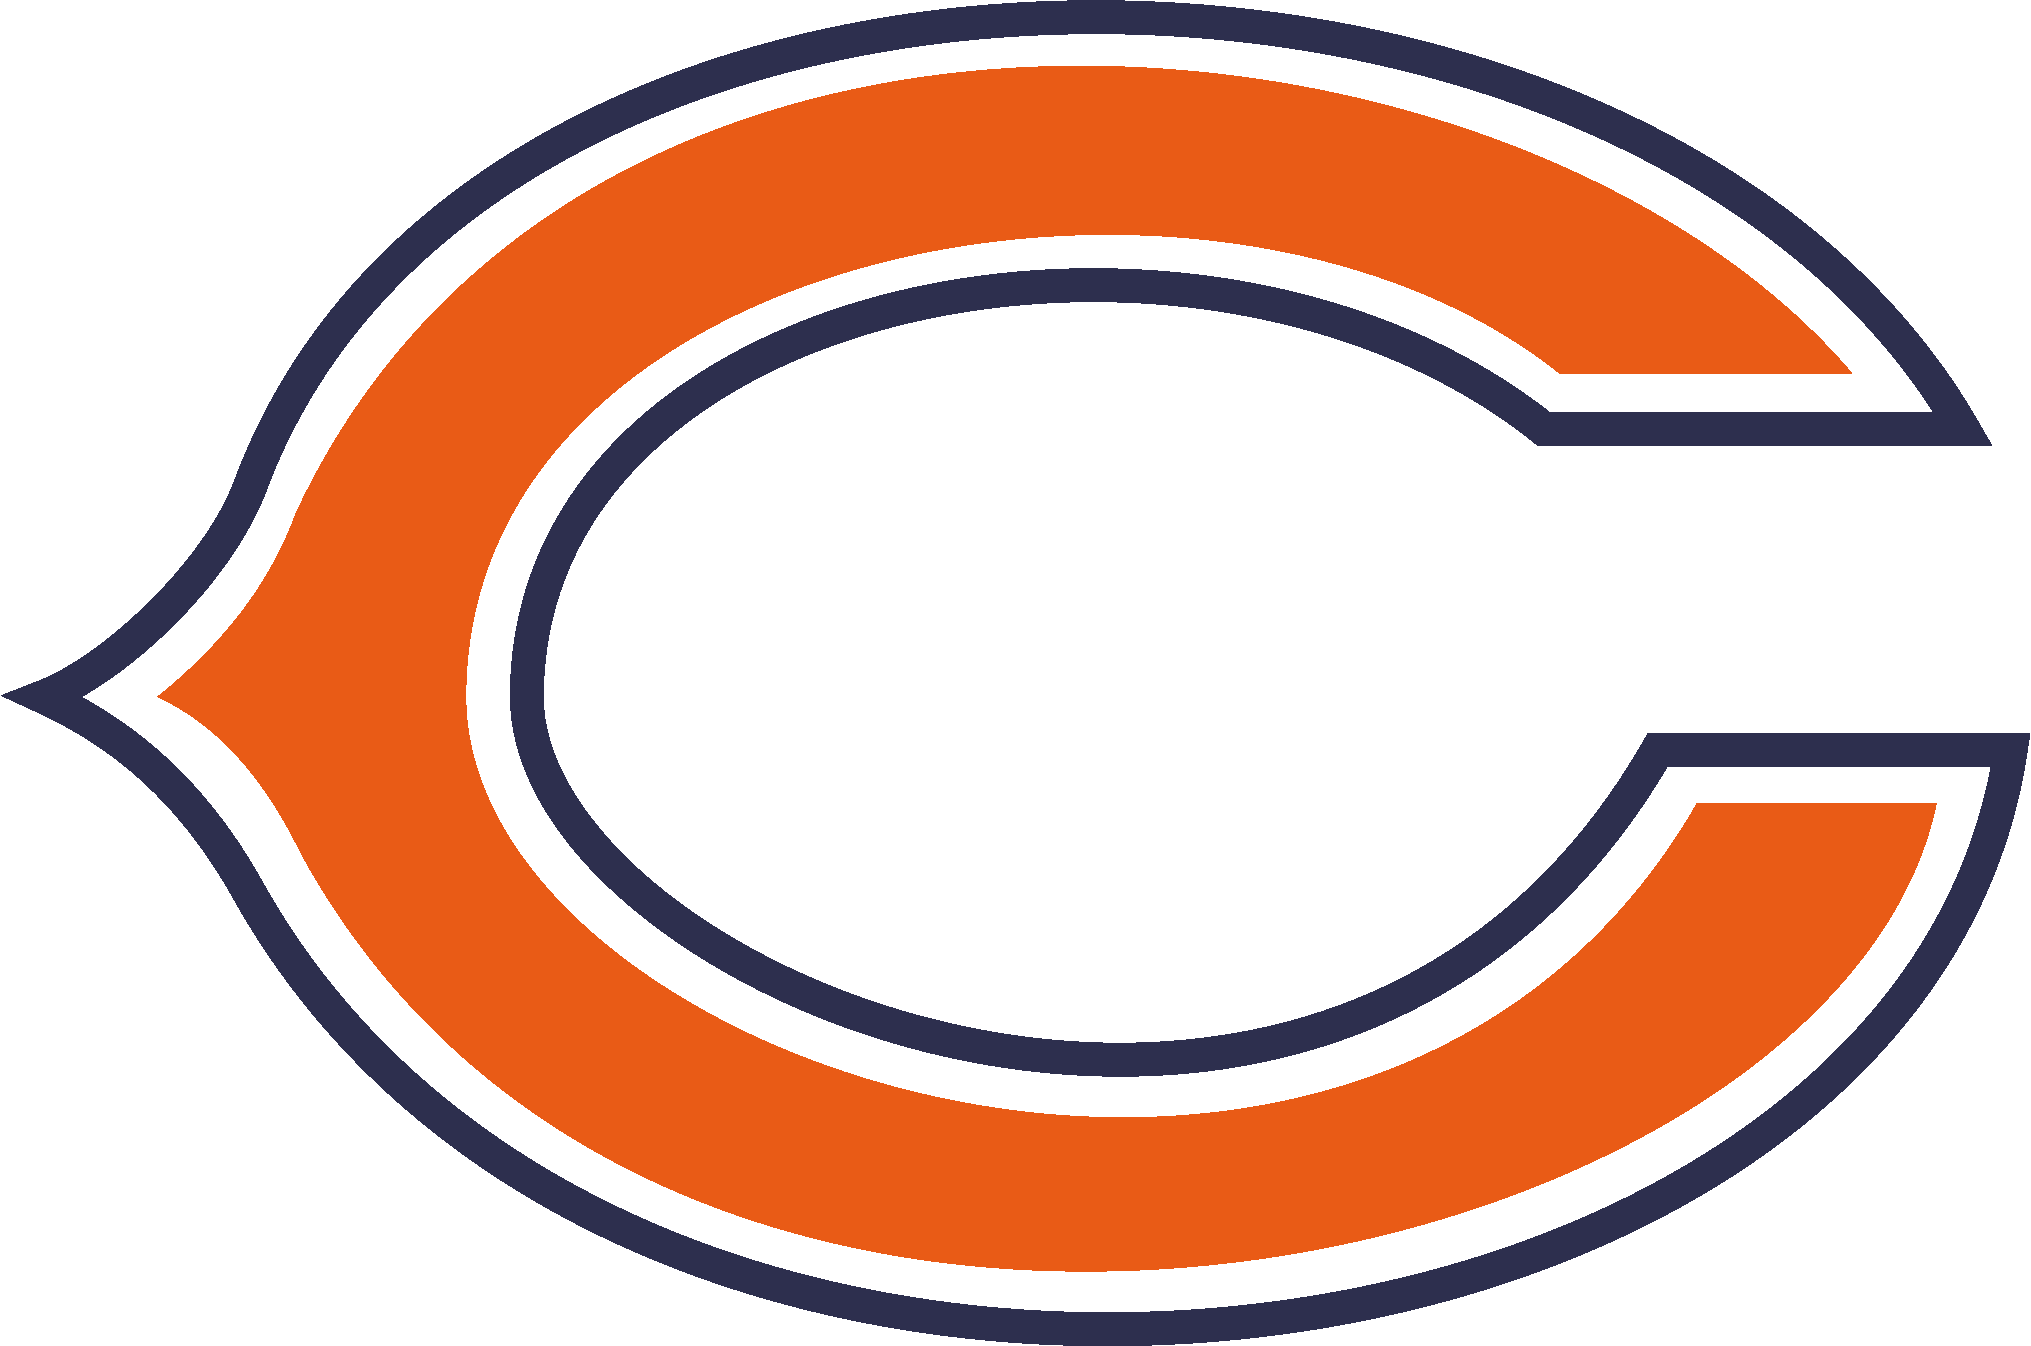 Chicago Bears Logo Vector Free Download